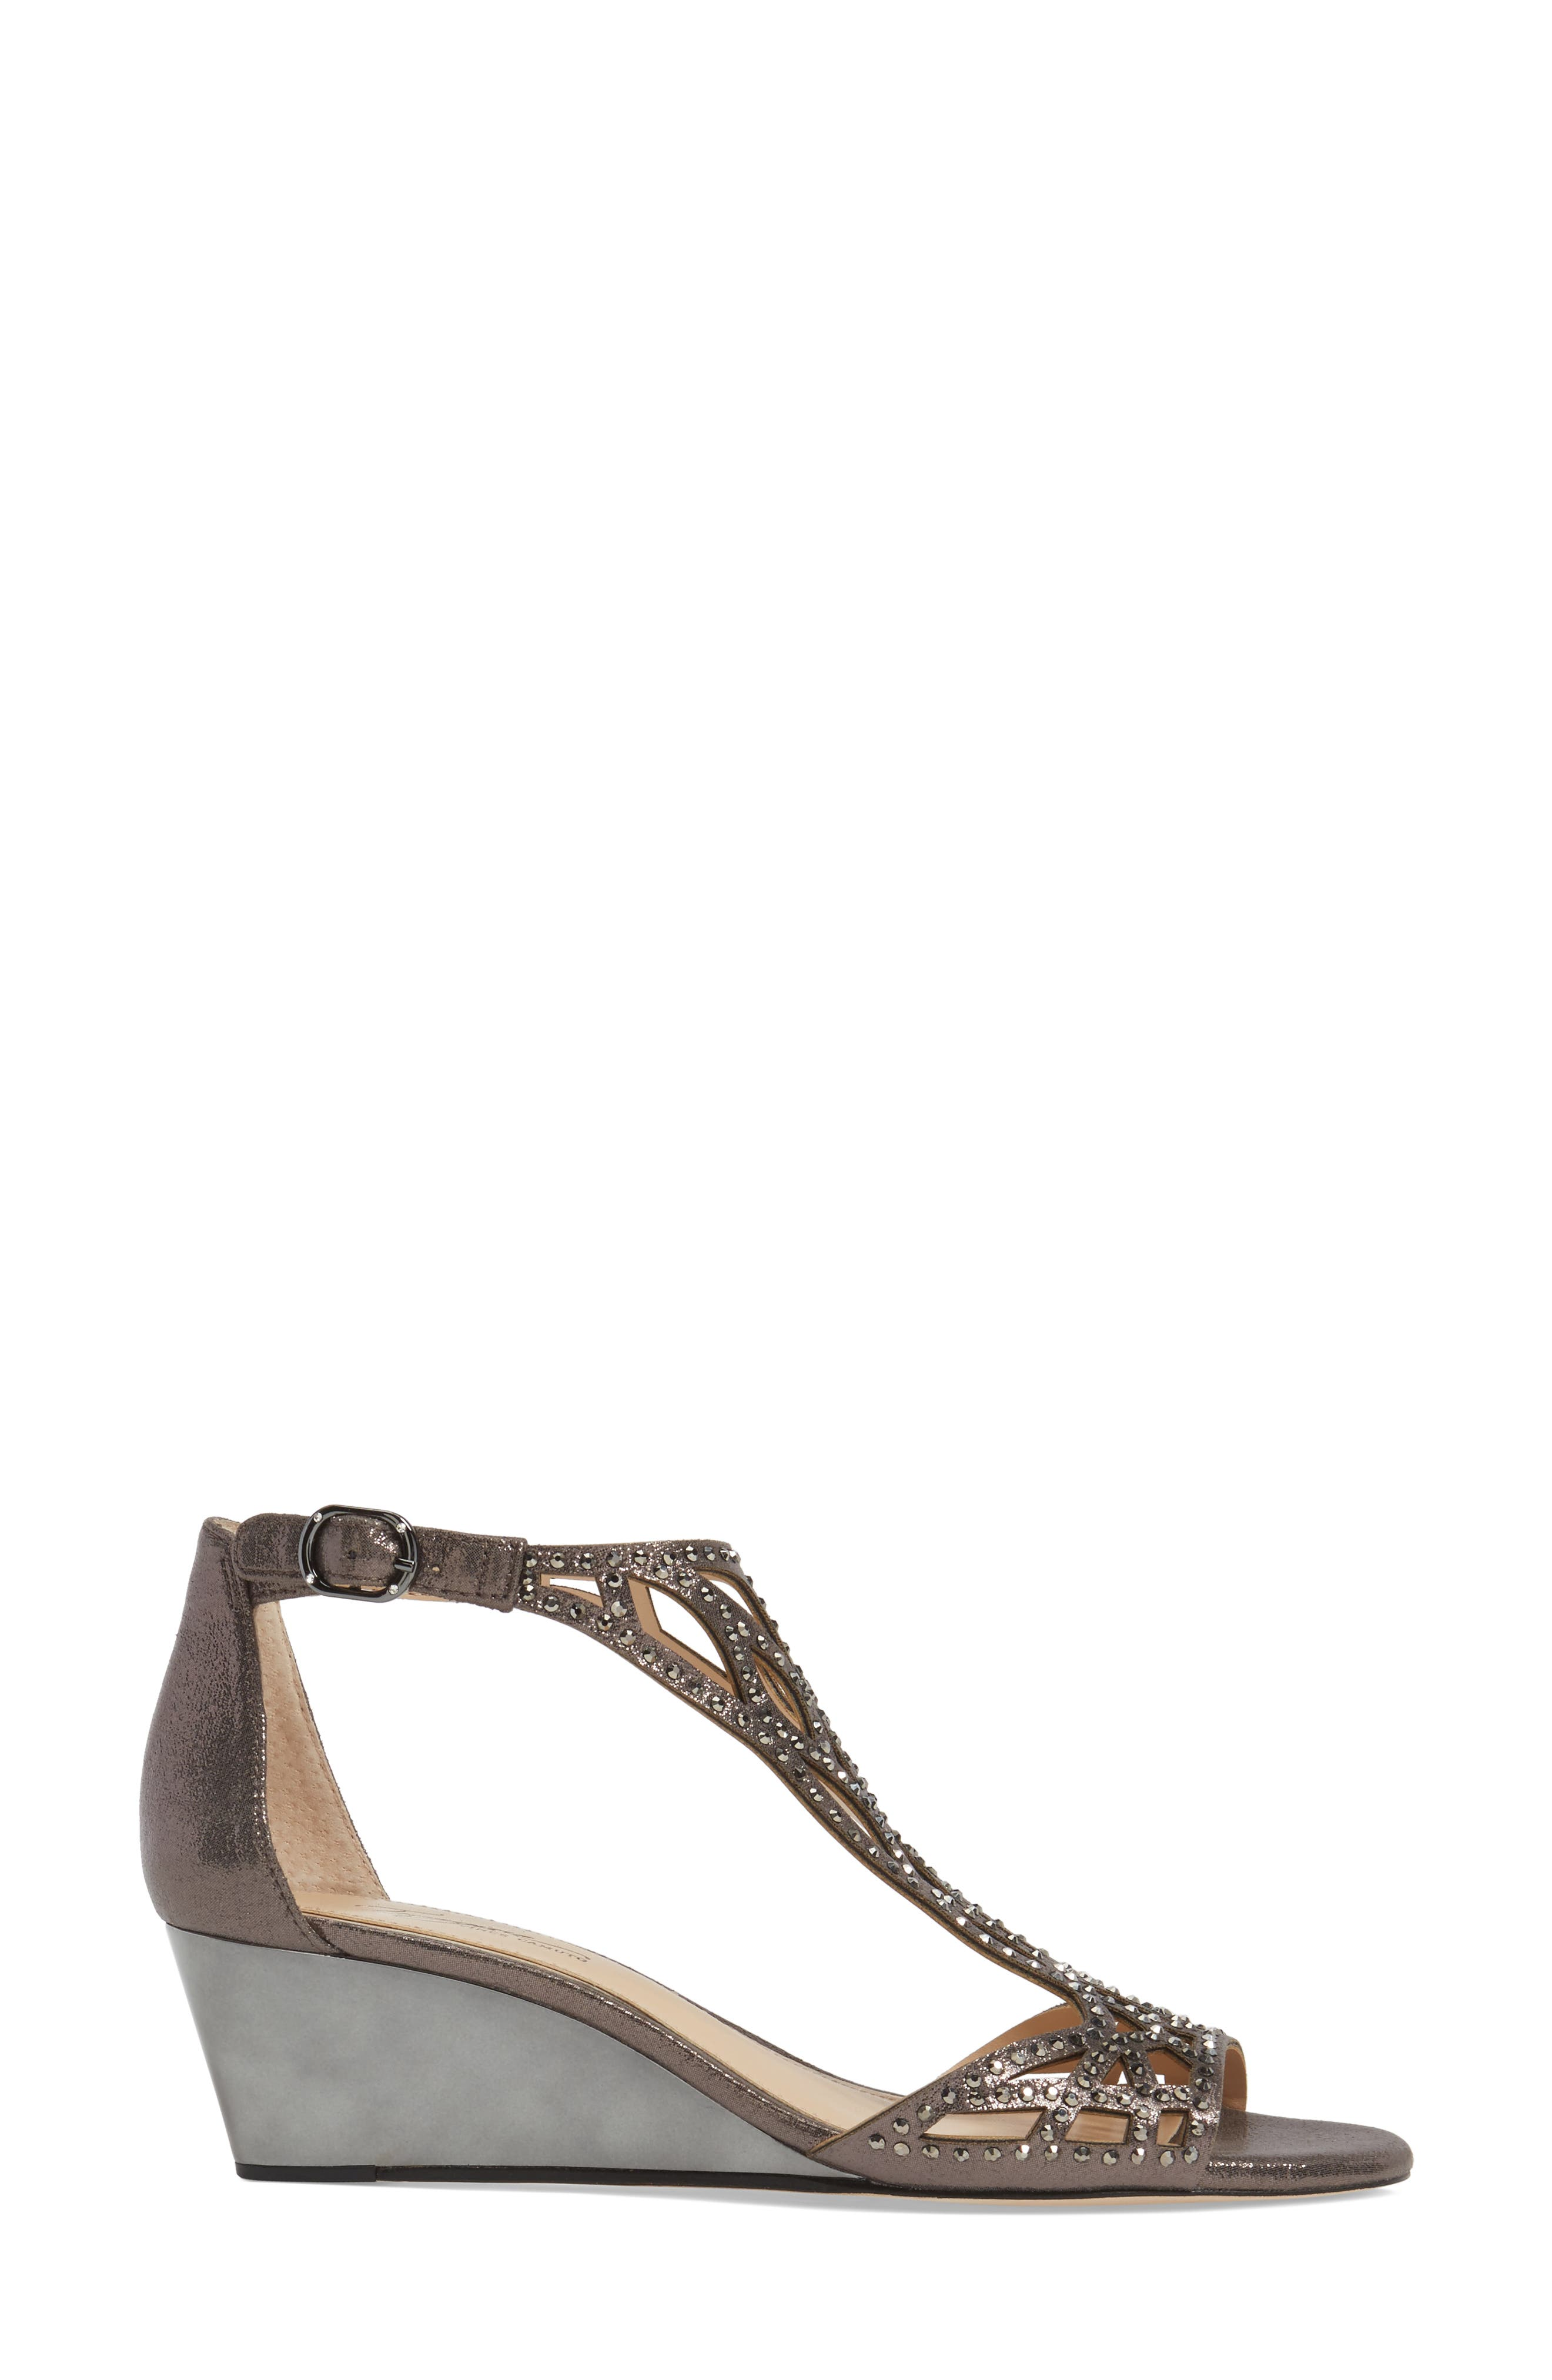 Alternate Image 3  - Imagine by Vince Camuto 'Jalen' Wedge Sandal (Women)